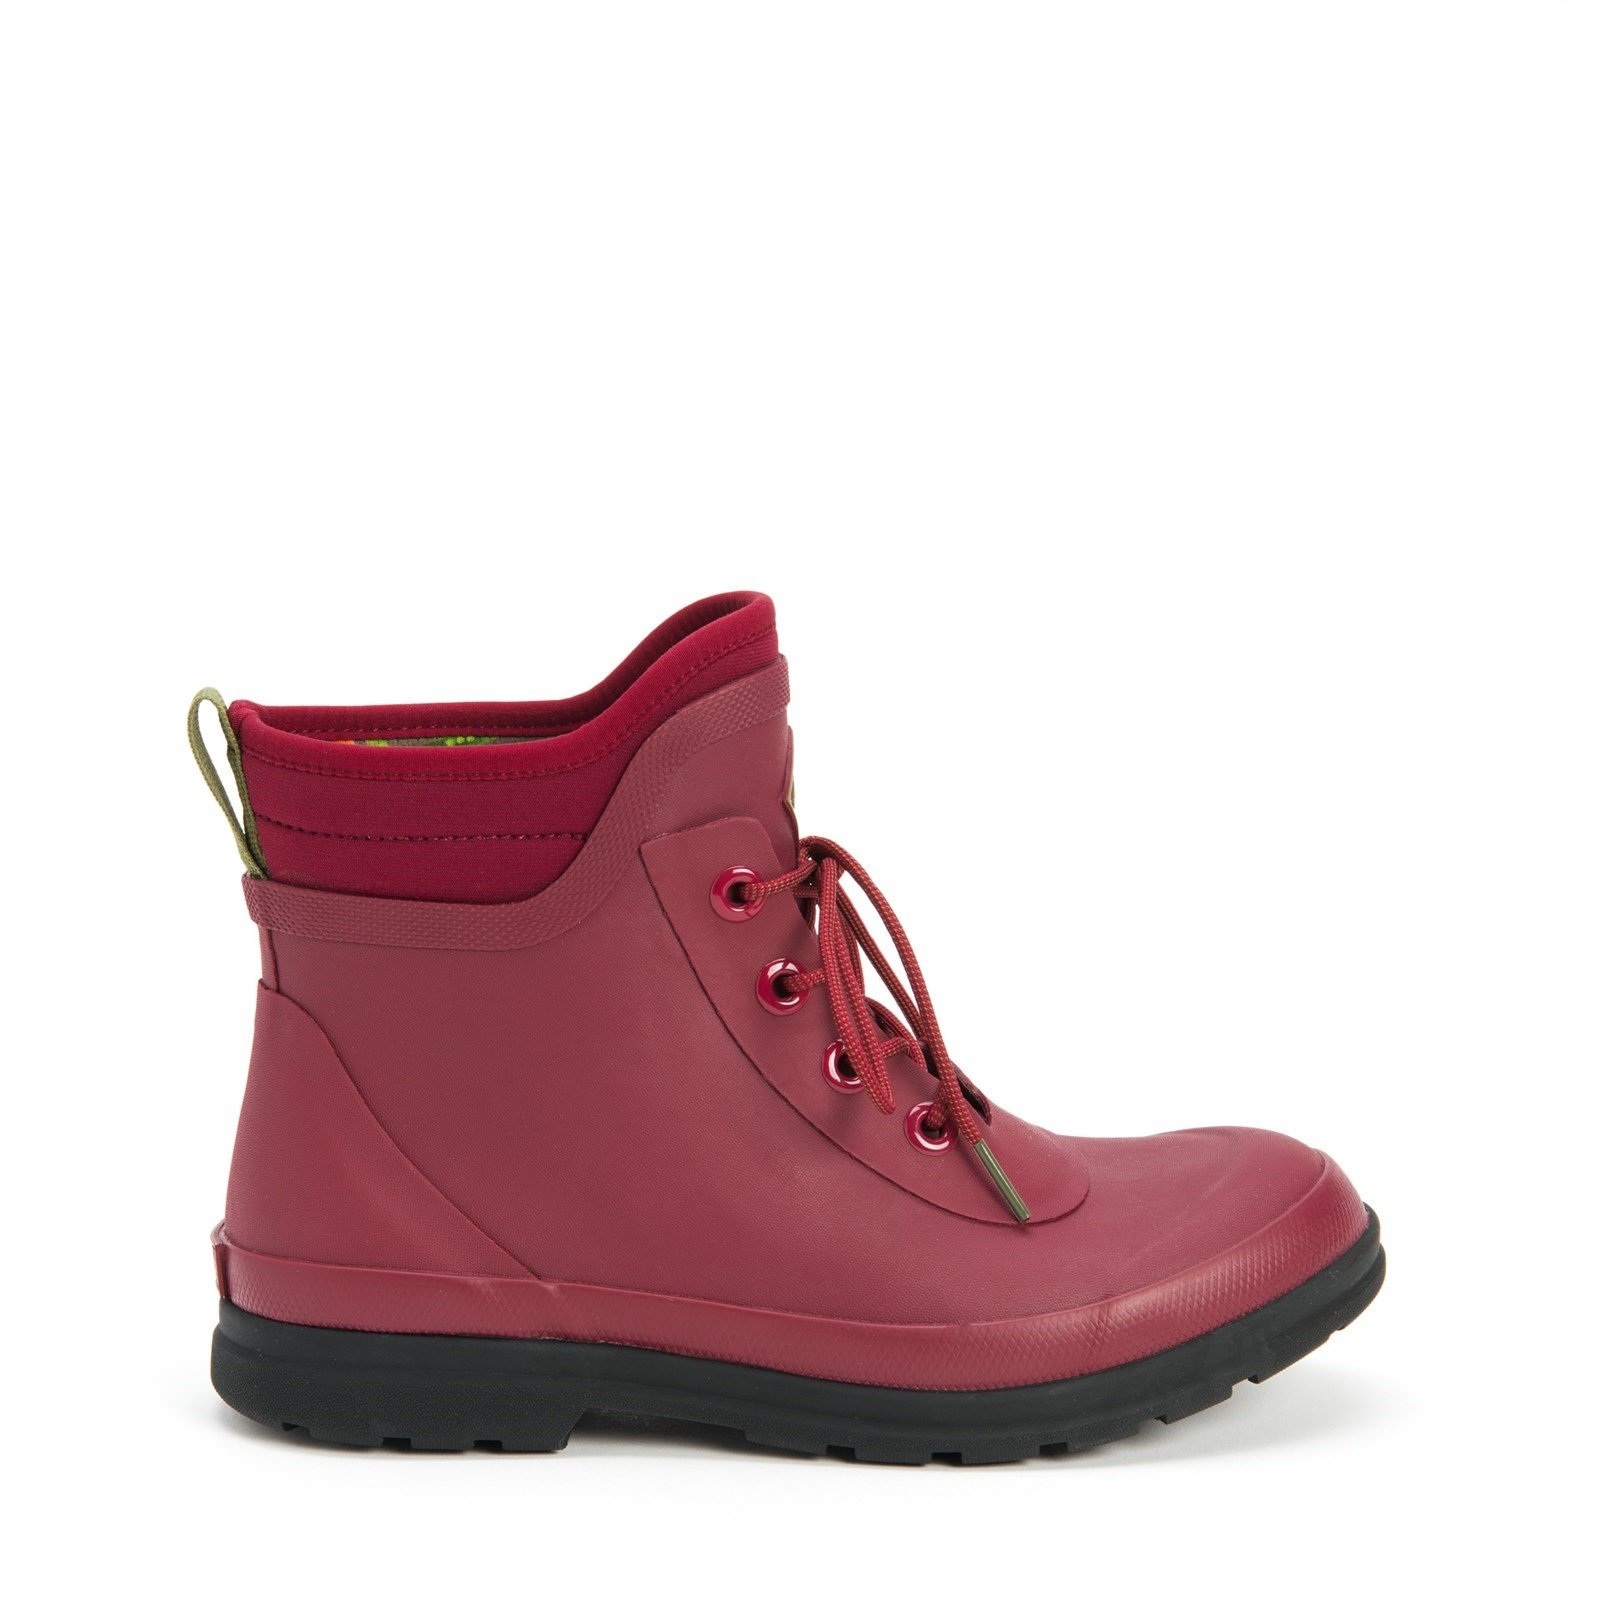 Muck Boots Women's Originals Lace Up Ankle Boot Various Colours 30079 - Berry 3